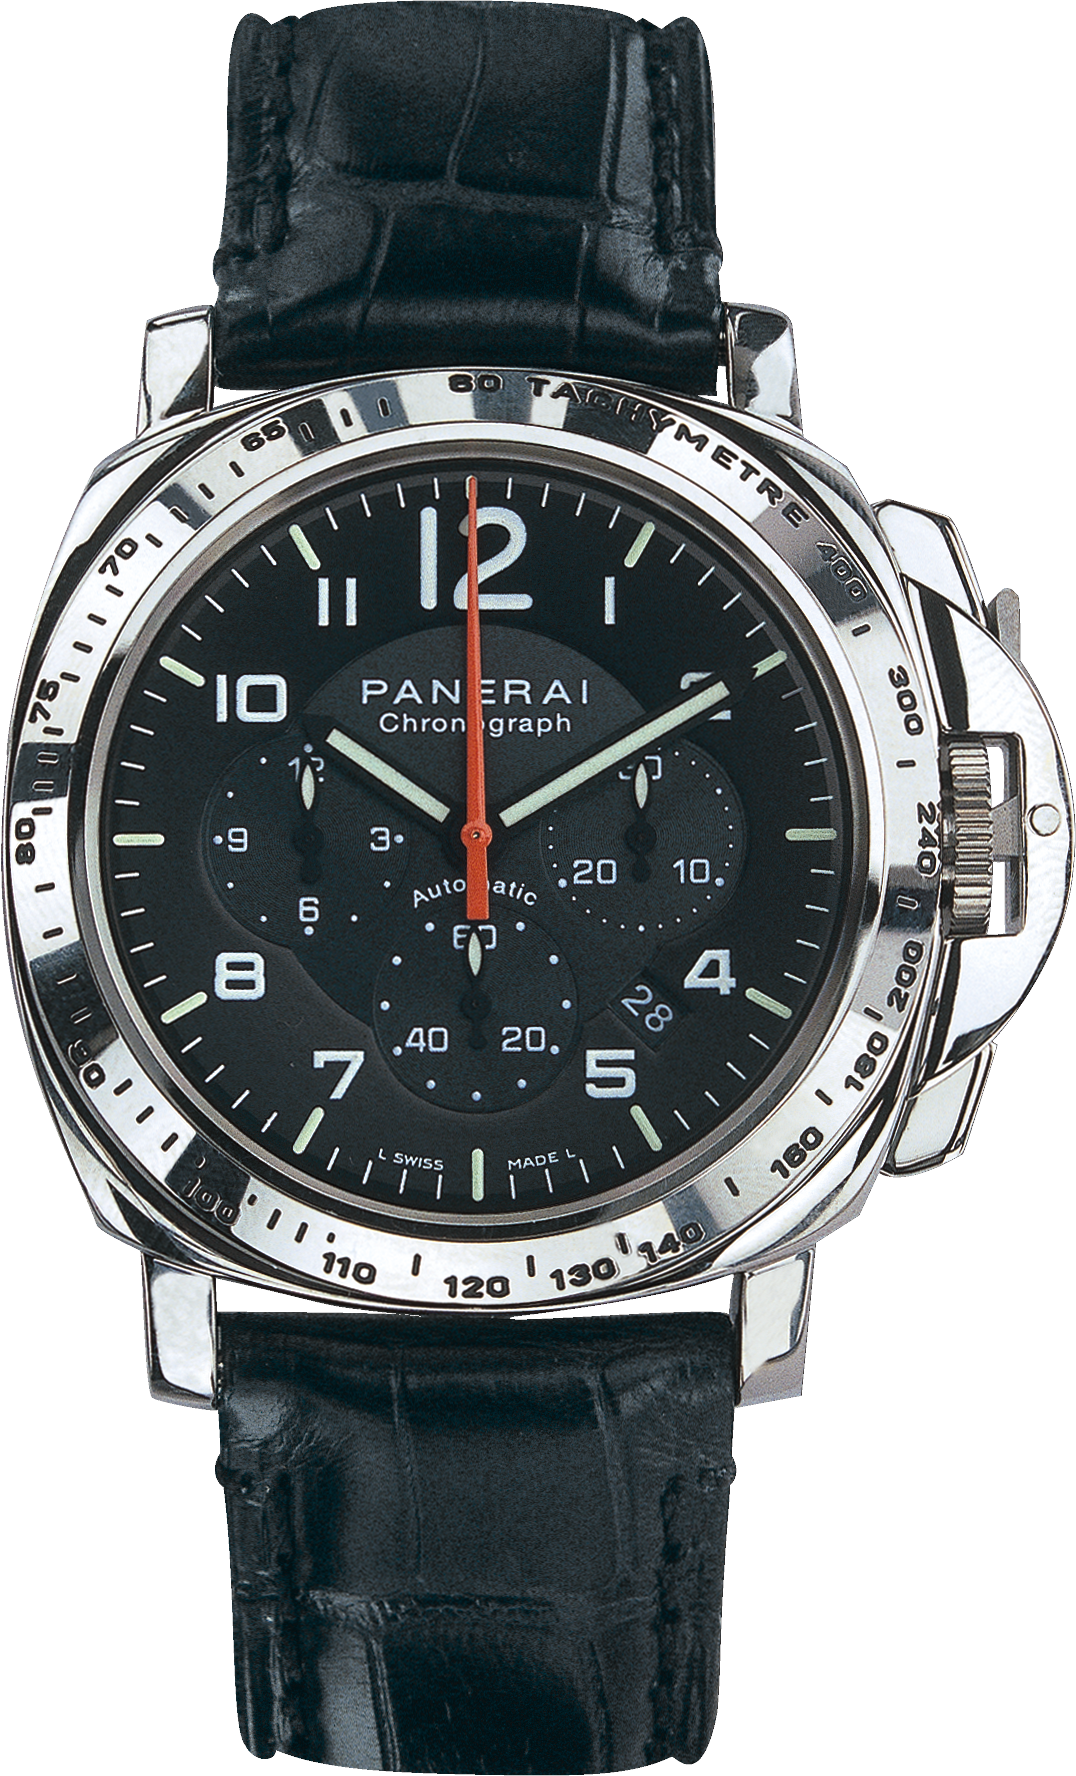 PNPAM00105 - Luminor Chrono Automatic White Gold for AMG - 40mm